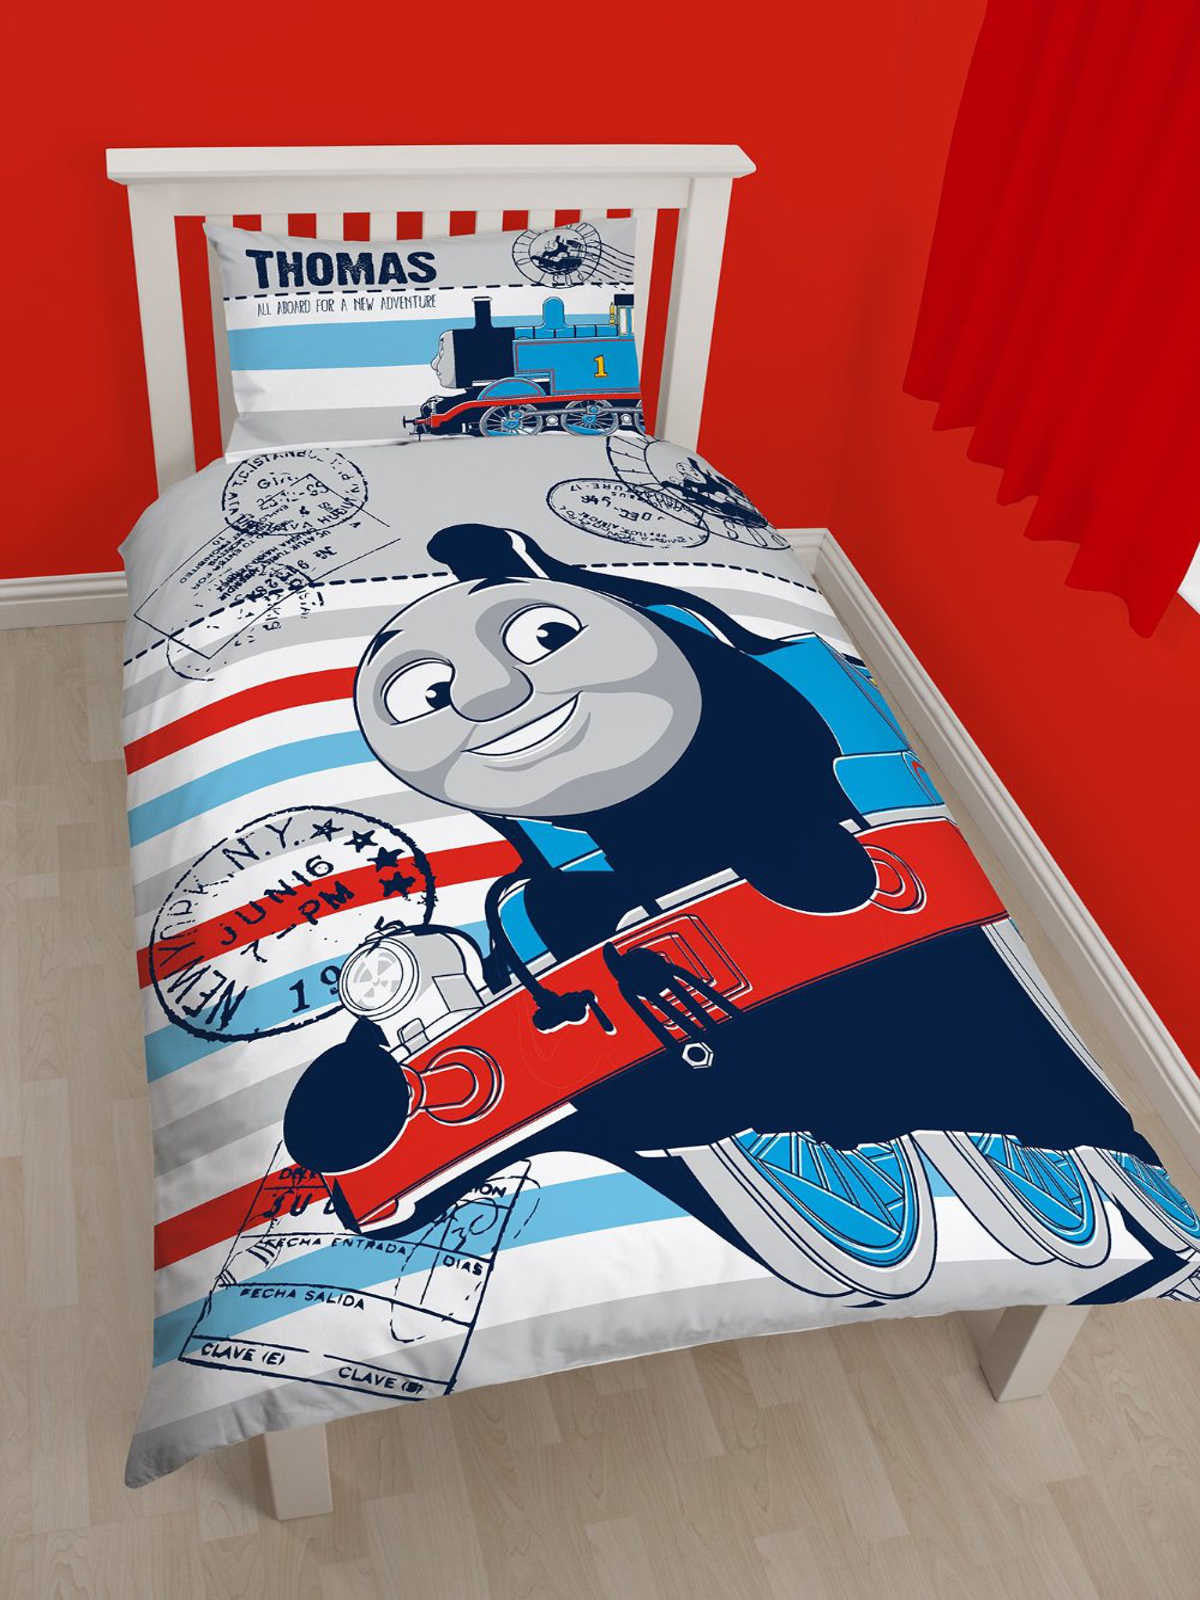 Thomas Adventure Single Duvet Cover Set Front Polycotton. Thomas Adventure Single Duvet Cover Set Polycotton  20 85 Free UK